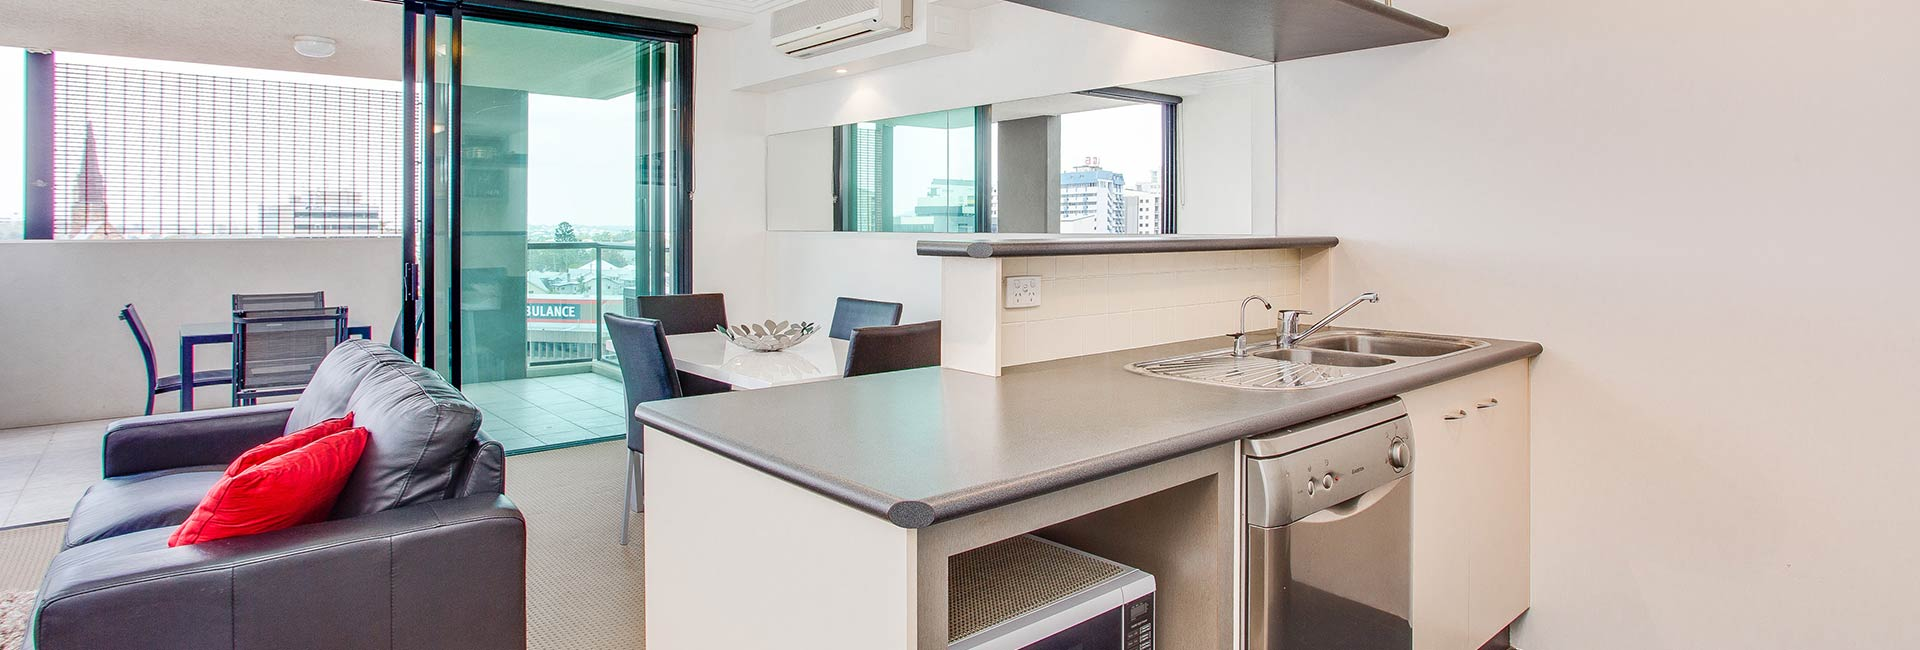 2 Bedroom 2 Bathroom Apartments Republic Brisbane